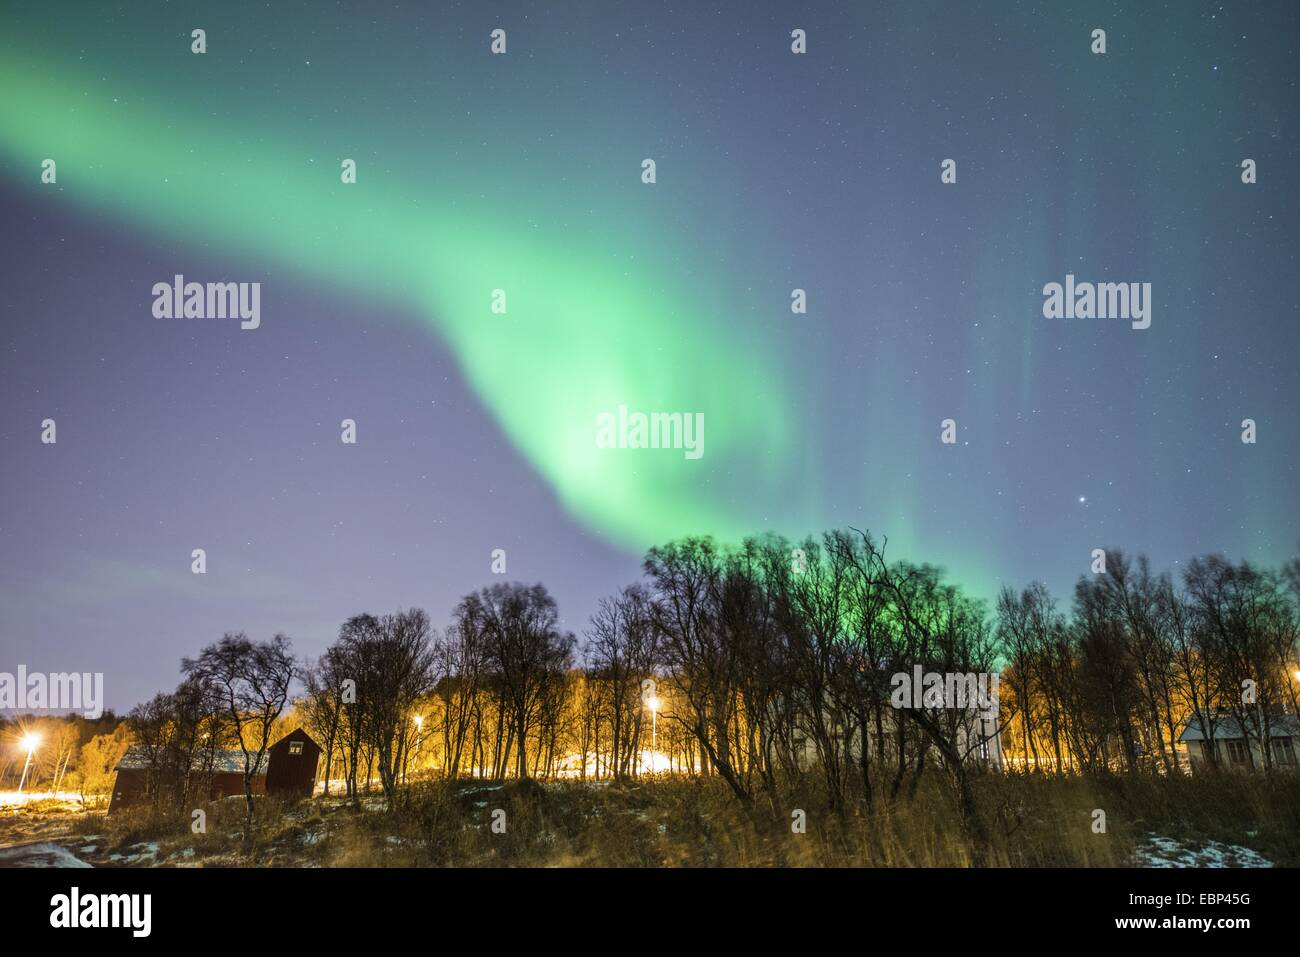 aurora and planet Jupiter, Norway, Troms, Tromsoe, Tromsoe - Stock Image